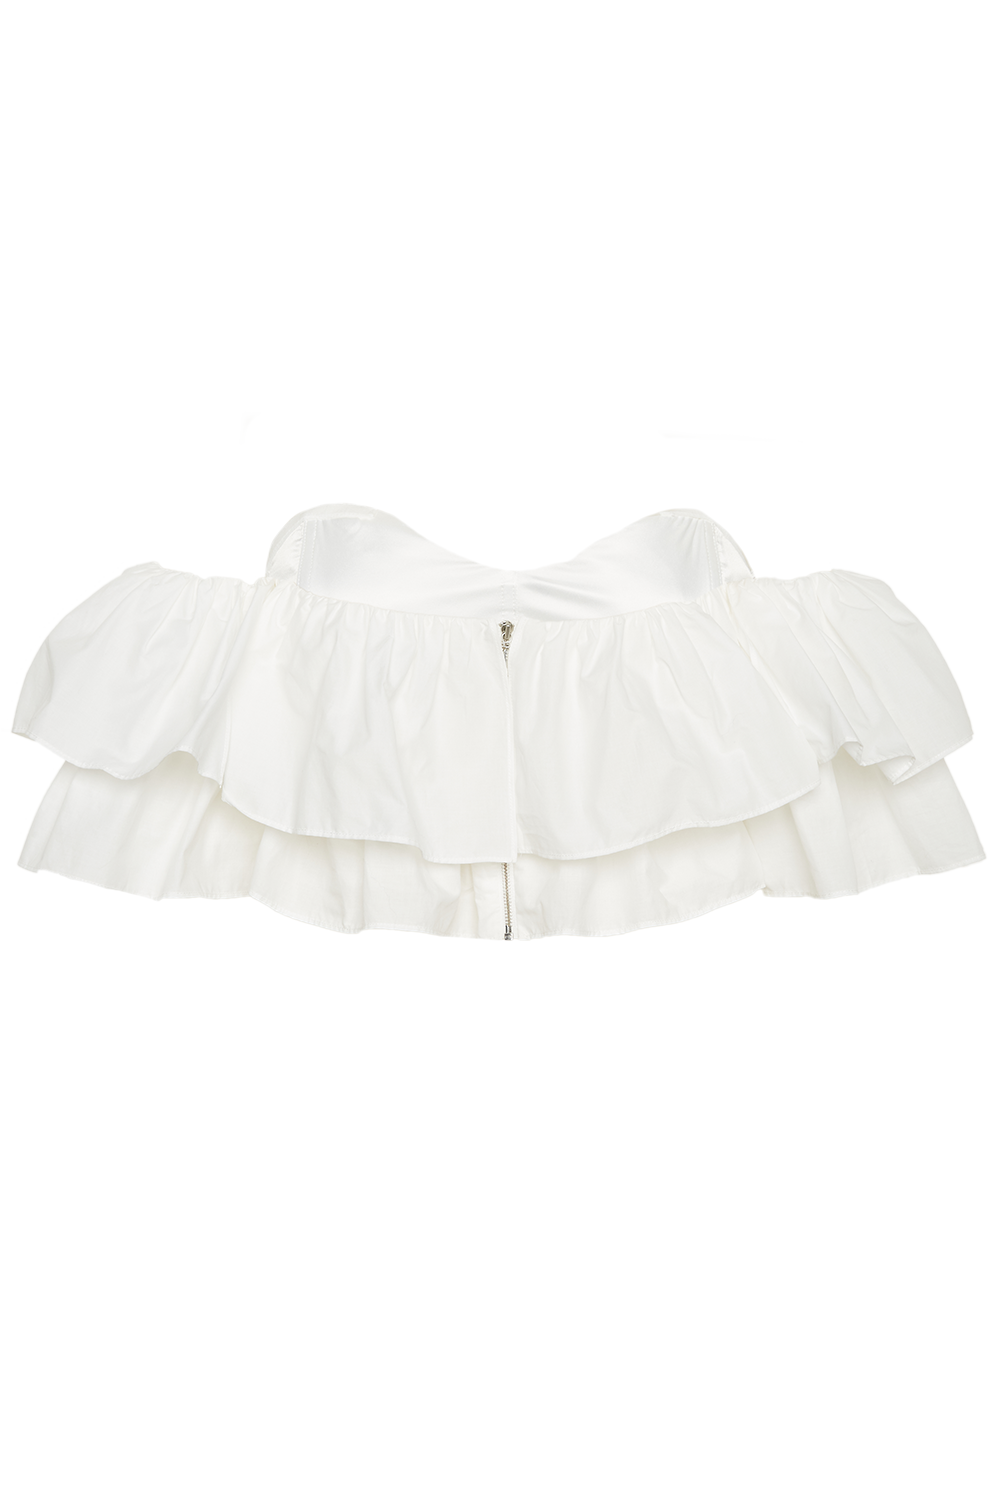 AURORA TOP in colour BRIGHT WHITE